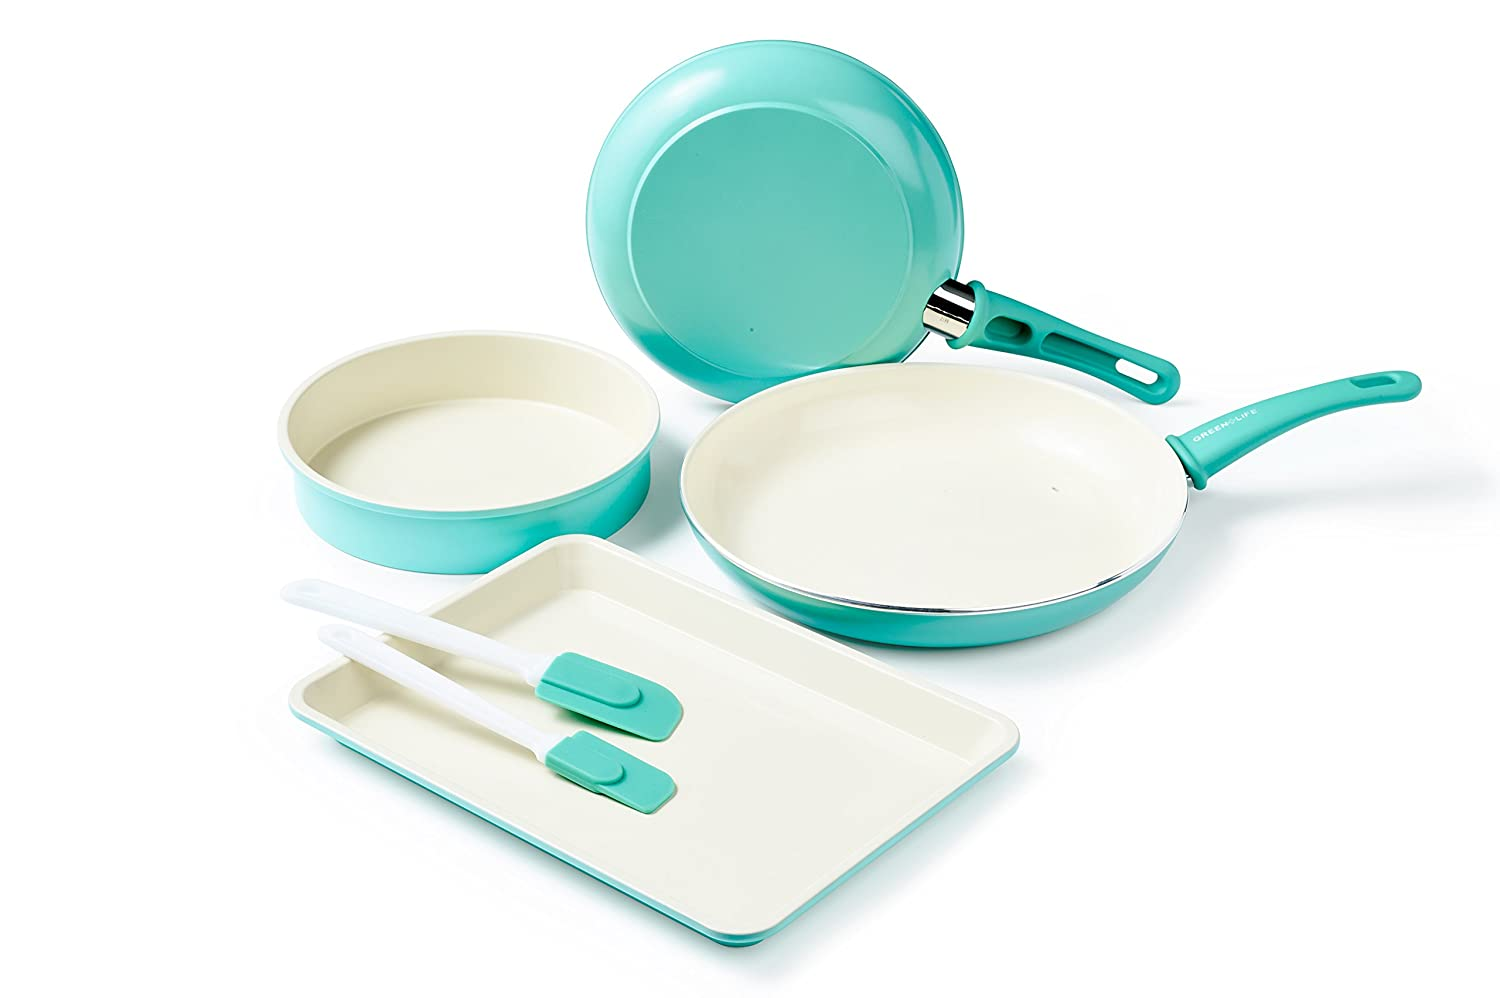 GreenLife Large Non-Stick Ceramic Cookie Sheet, Turquoise GreenPan BW000055-002